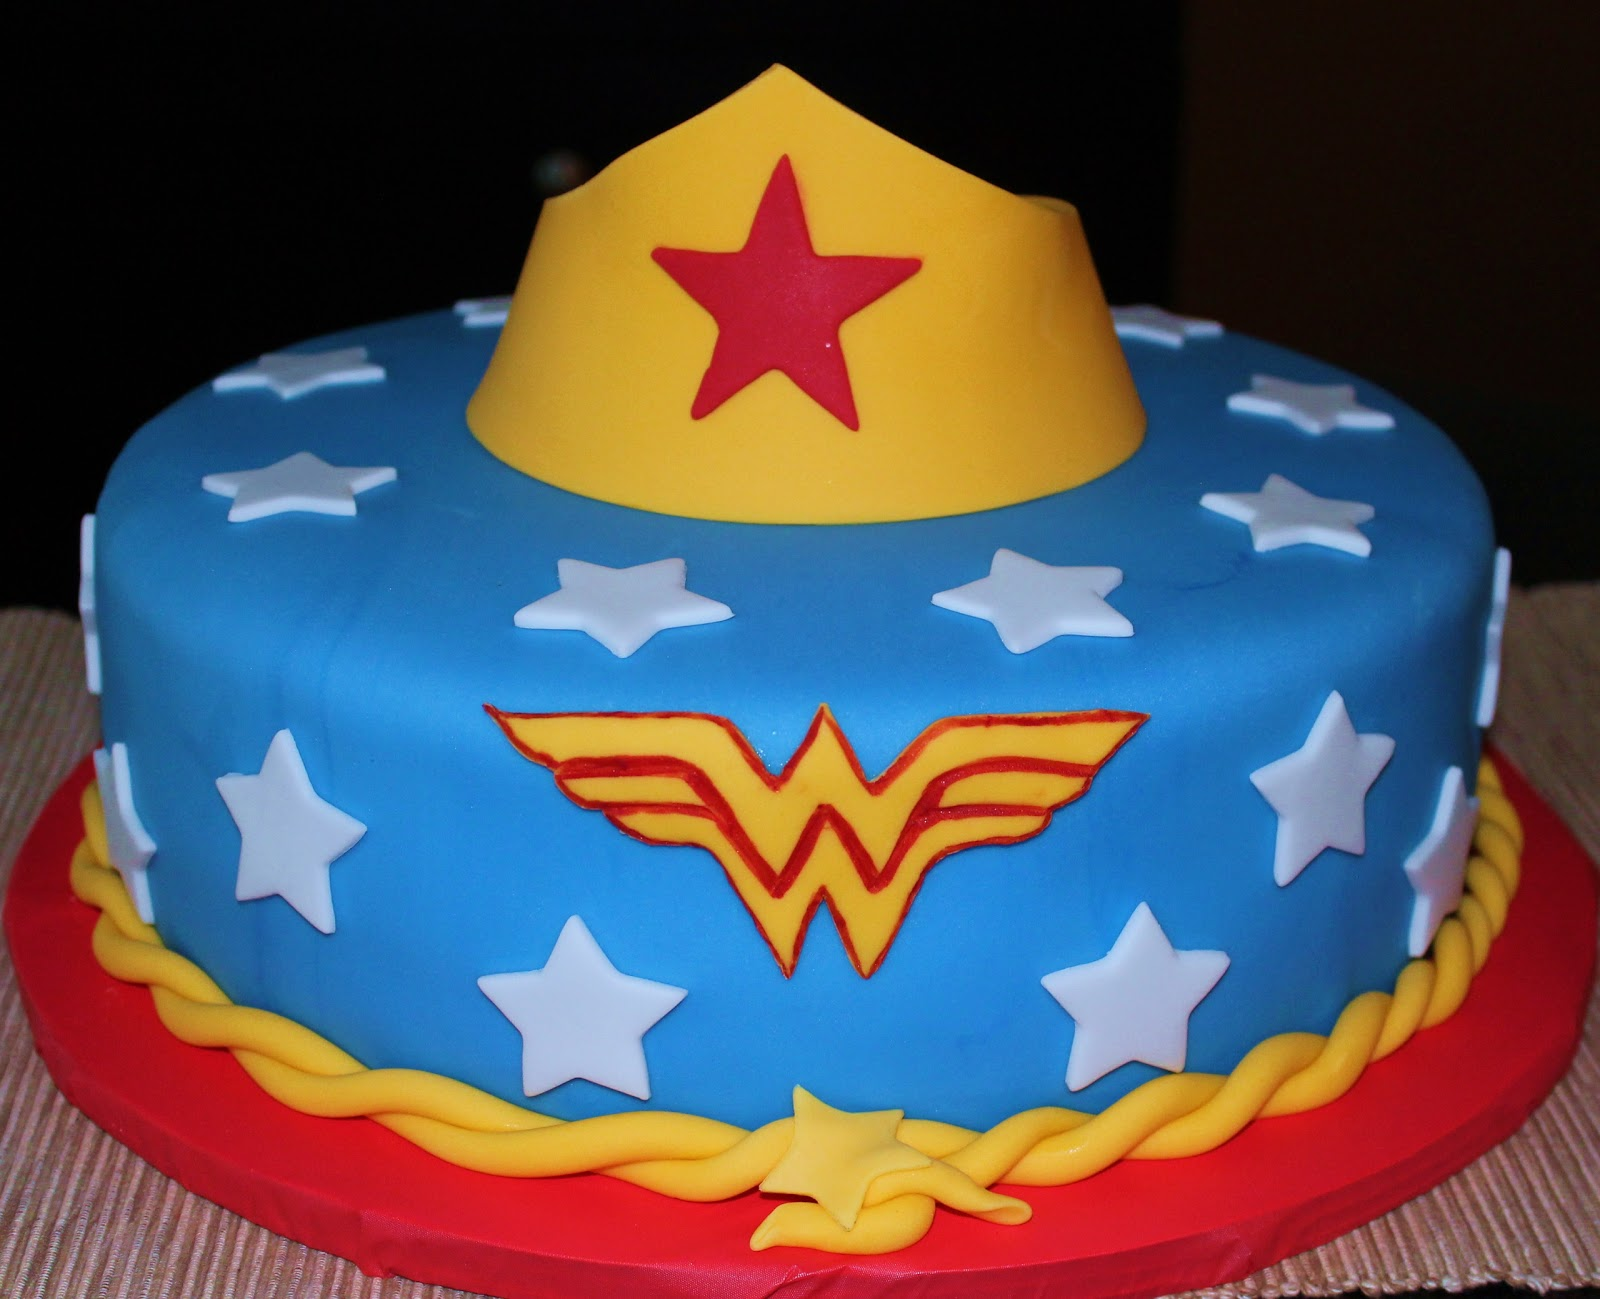 Cake Decorations New Lynn : Creative Cakes by Lynn: Wonder Woman Cake